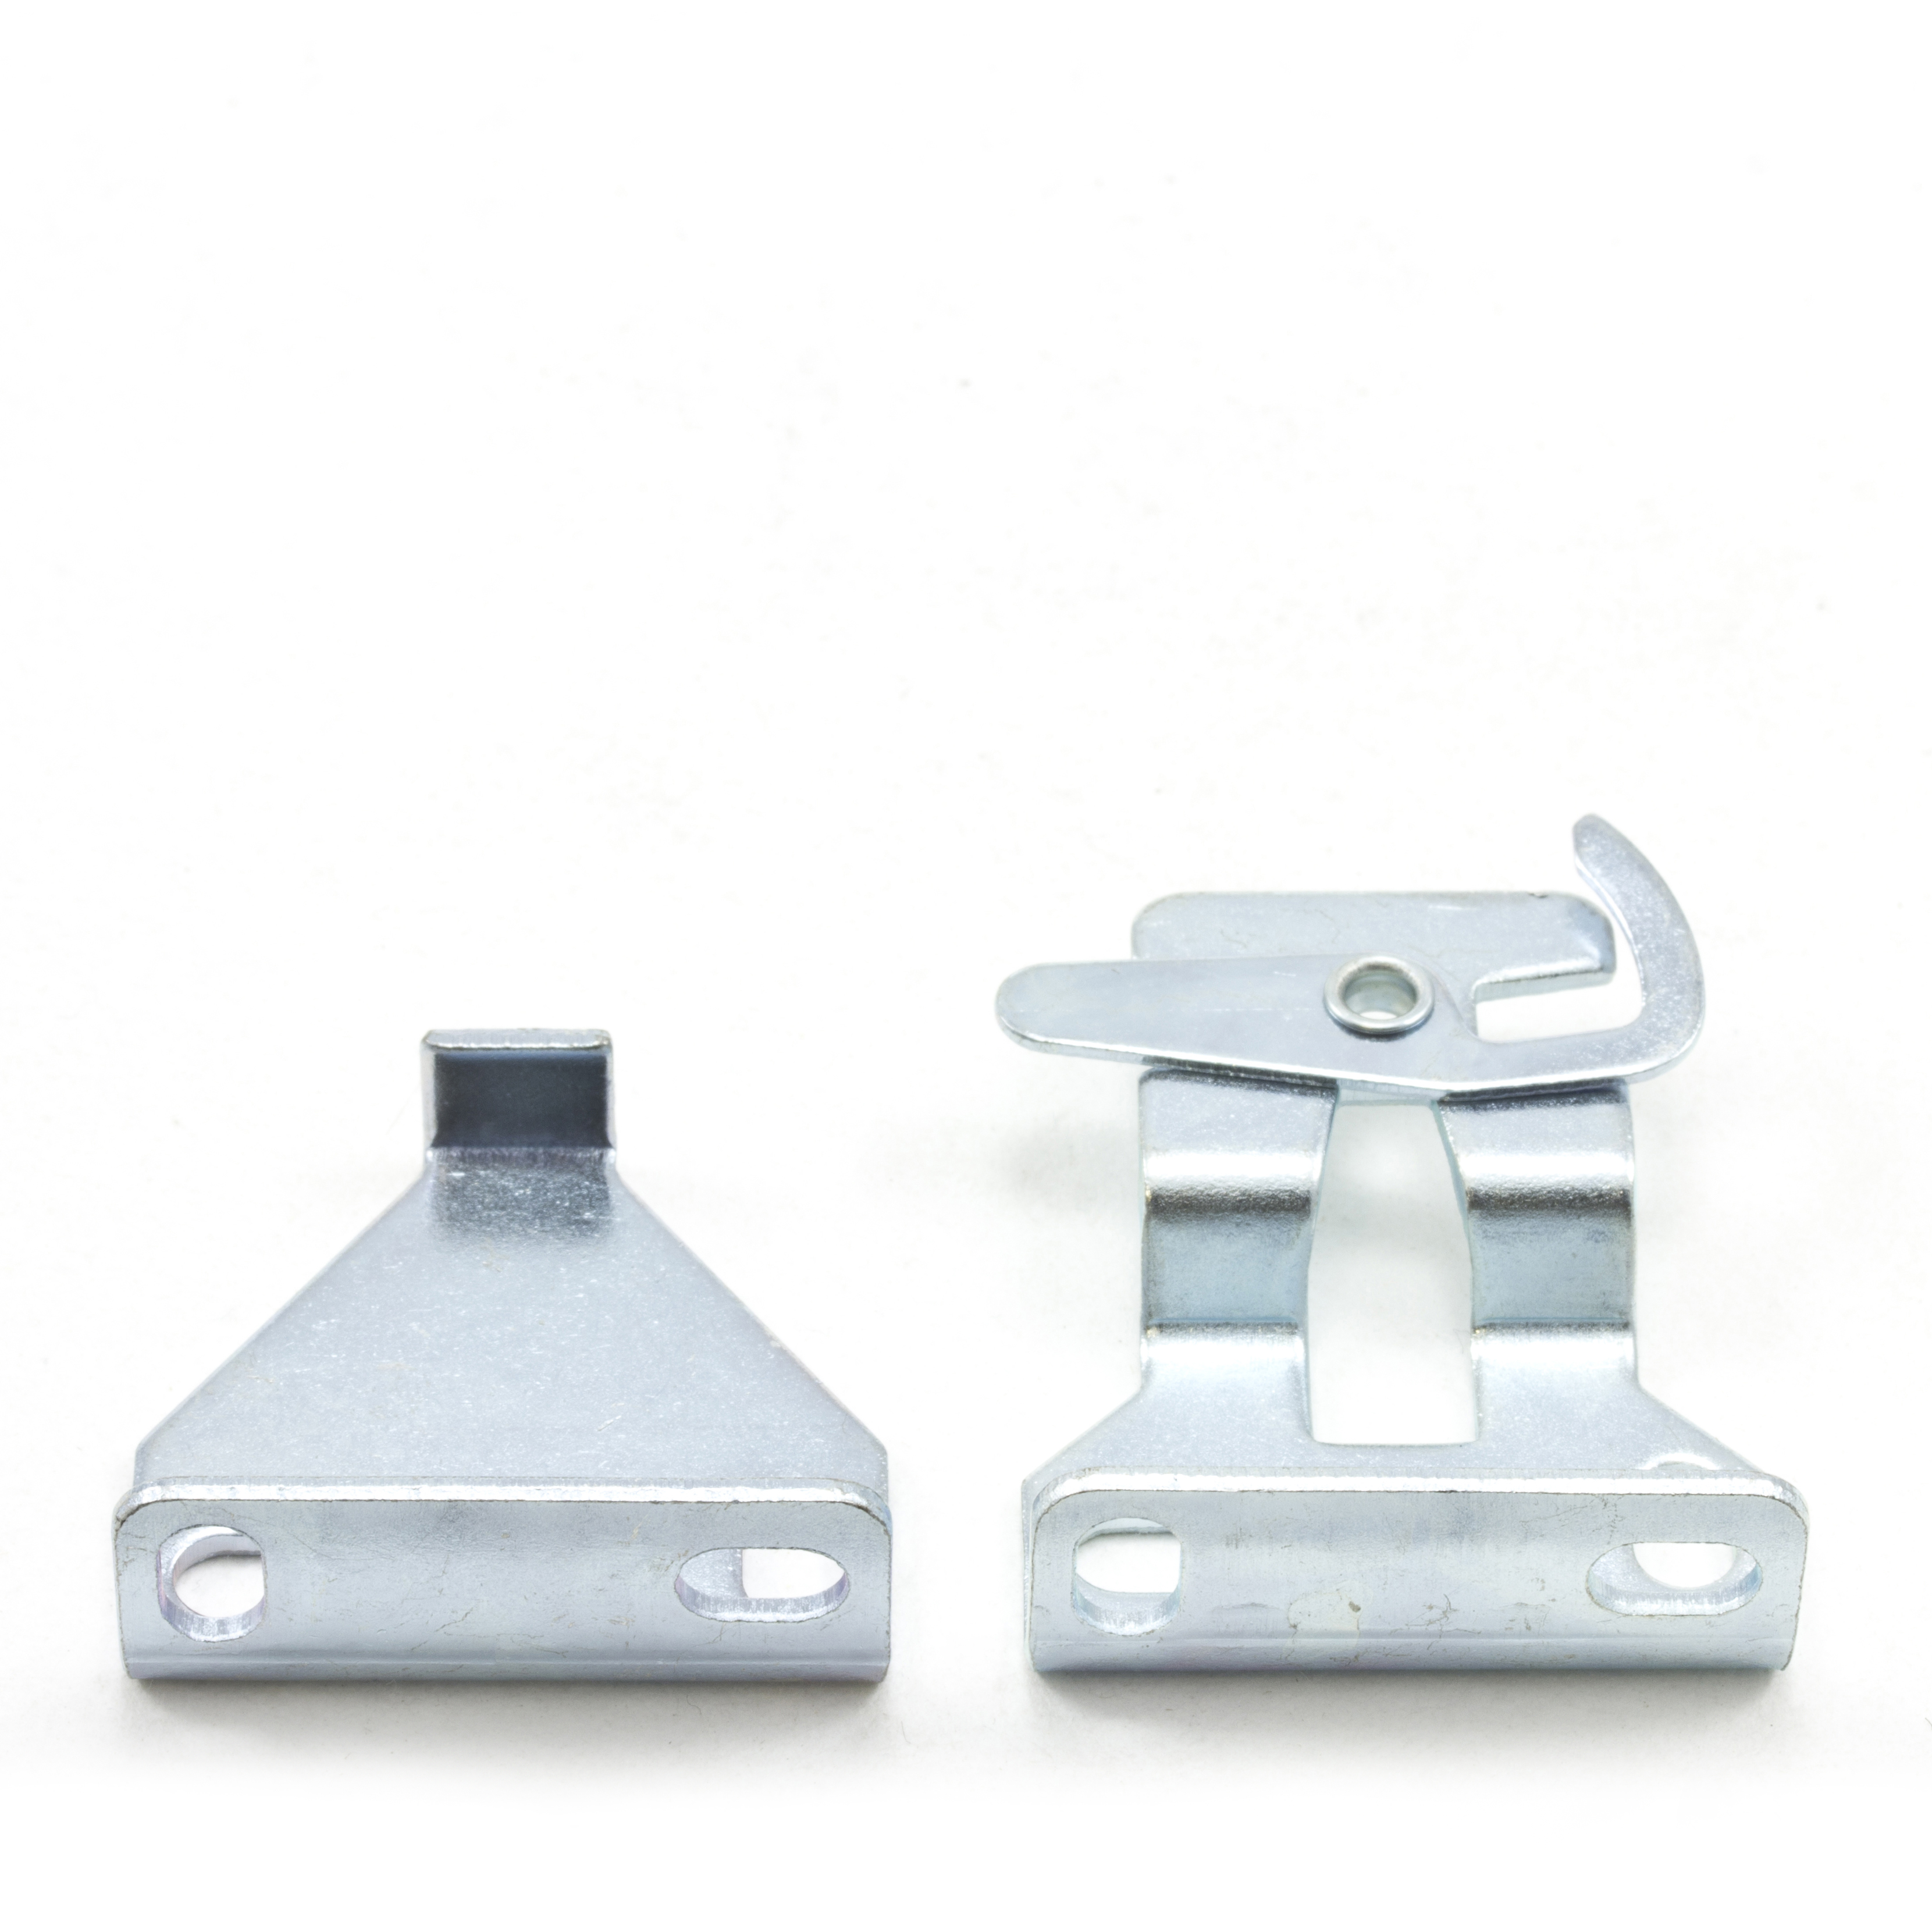 Thumbnail RollEase Mounting Bracket for R-3/ R-8 Clutch 1-1/2 1